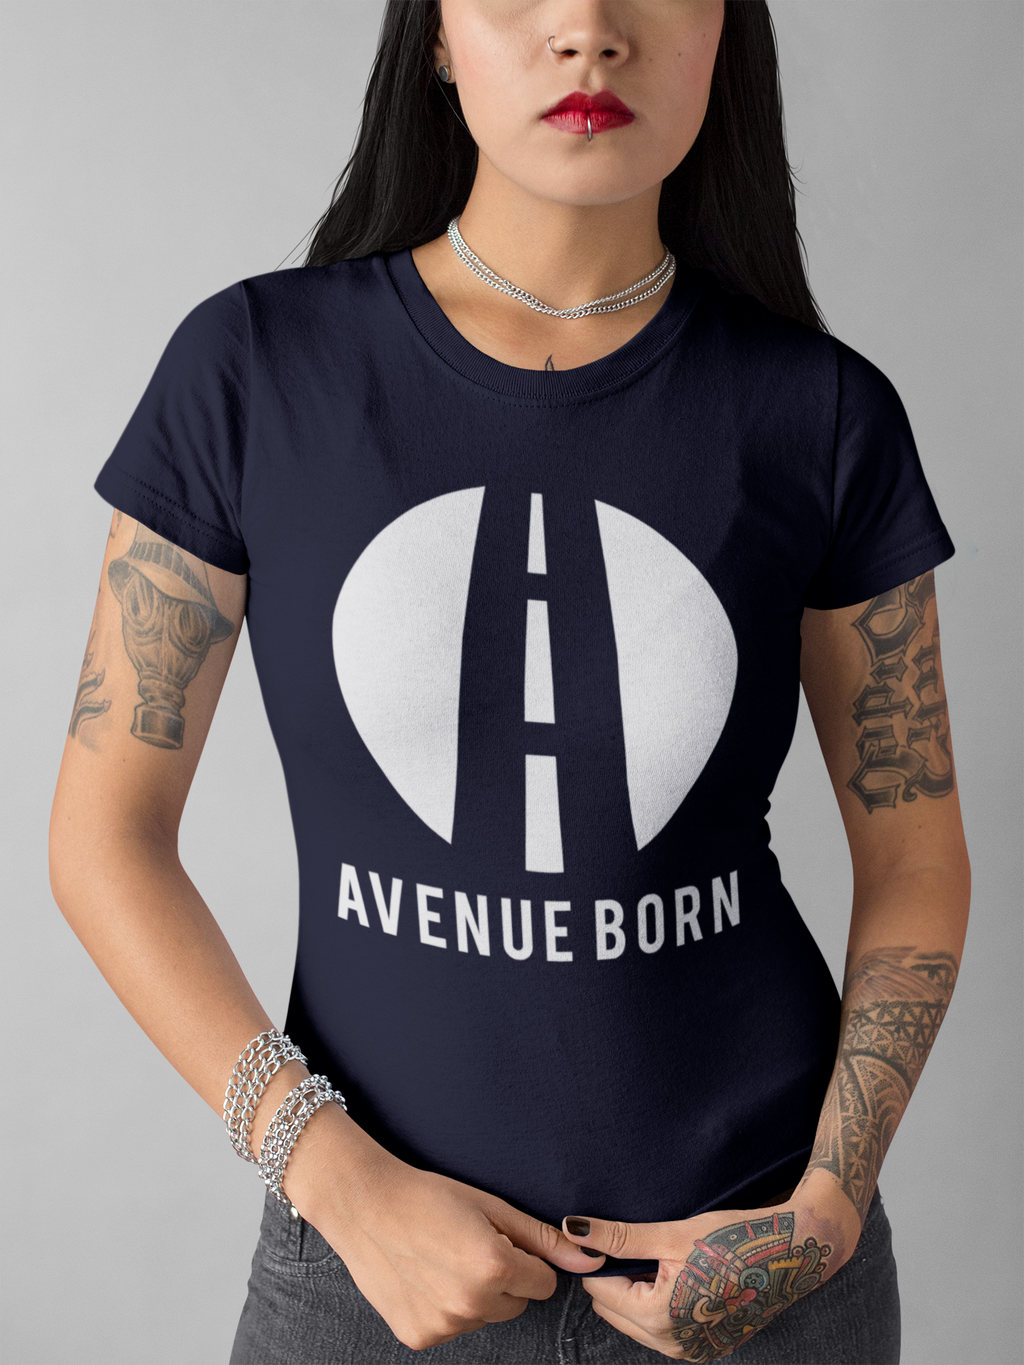 Avenue Born Original T-Shirt - Avenue Born